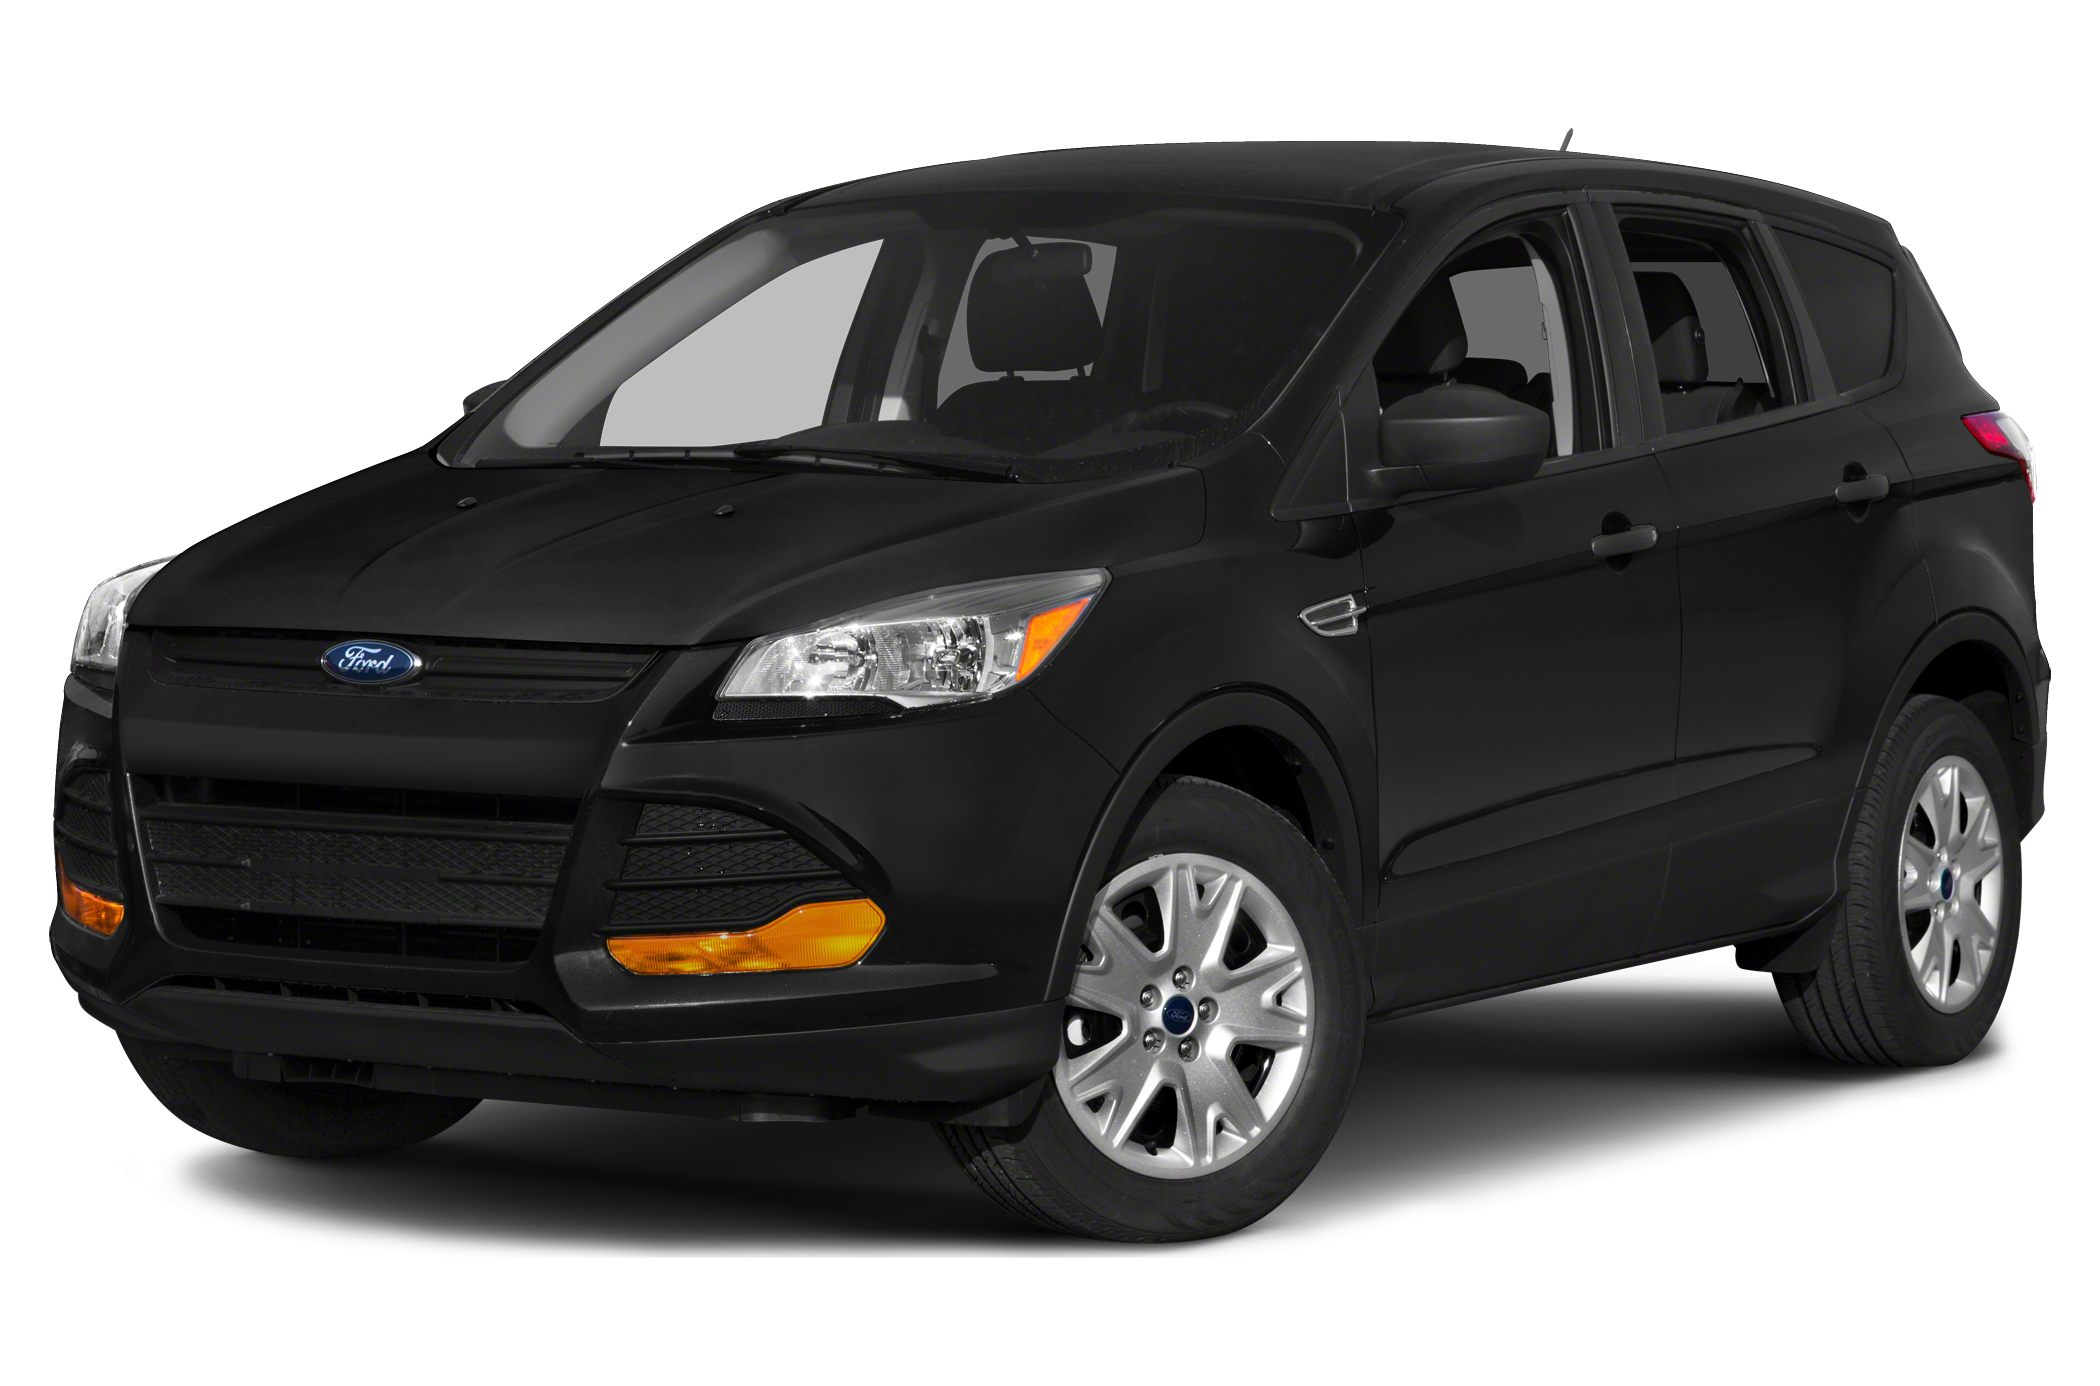 2015 Ford Escape SE SUV for sale in Brainerd for $25,183 with 5 miles.